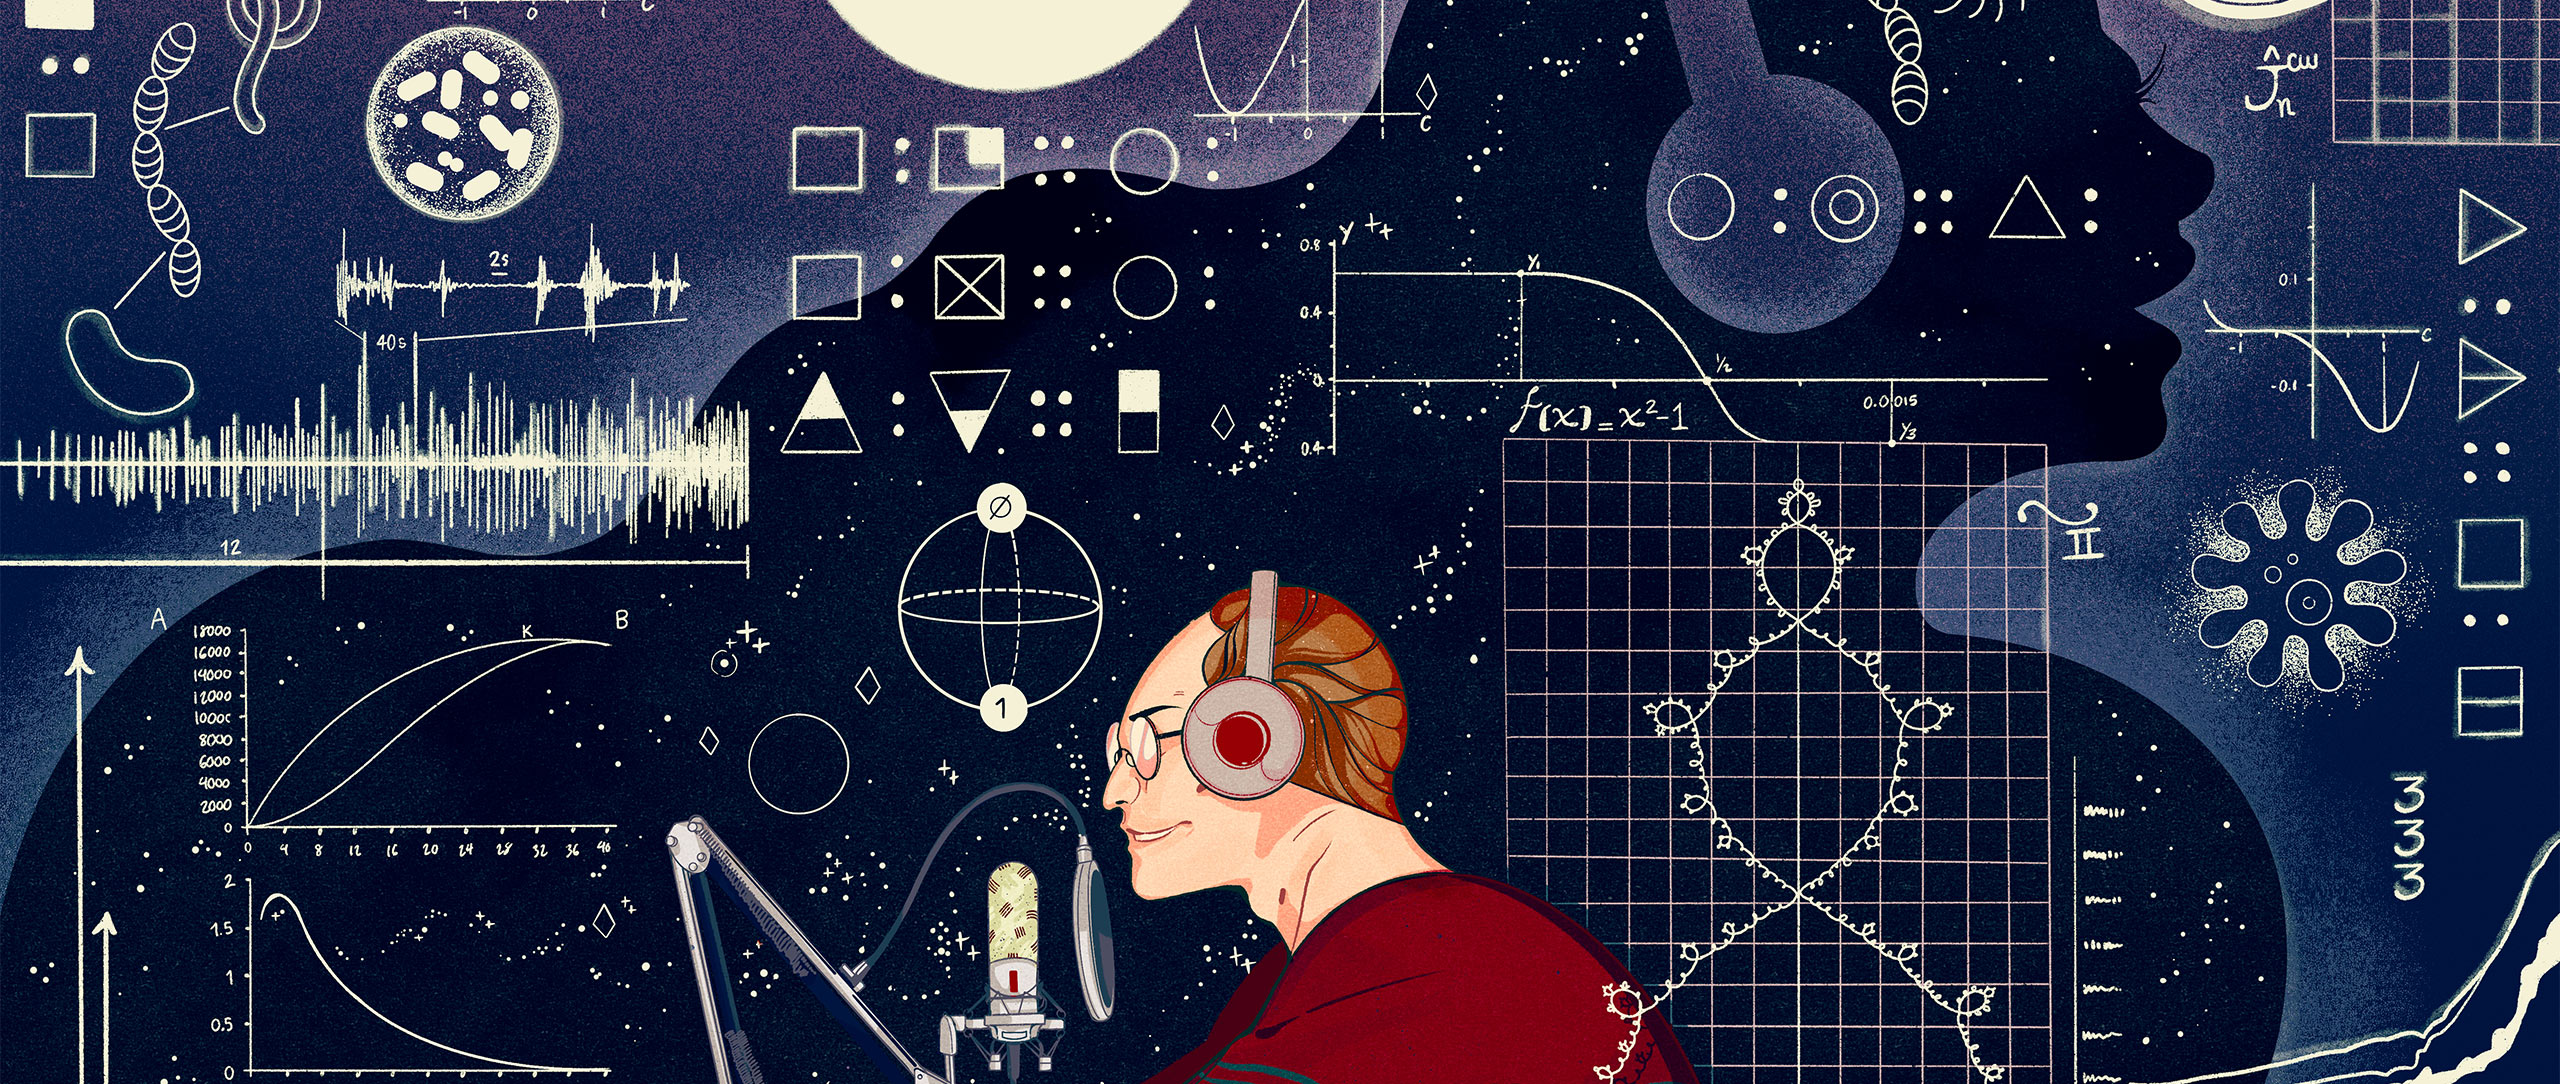 An illustration showing Steven Strogatz at a microphone, surrounded by a swirl of icons representing different subjects.